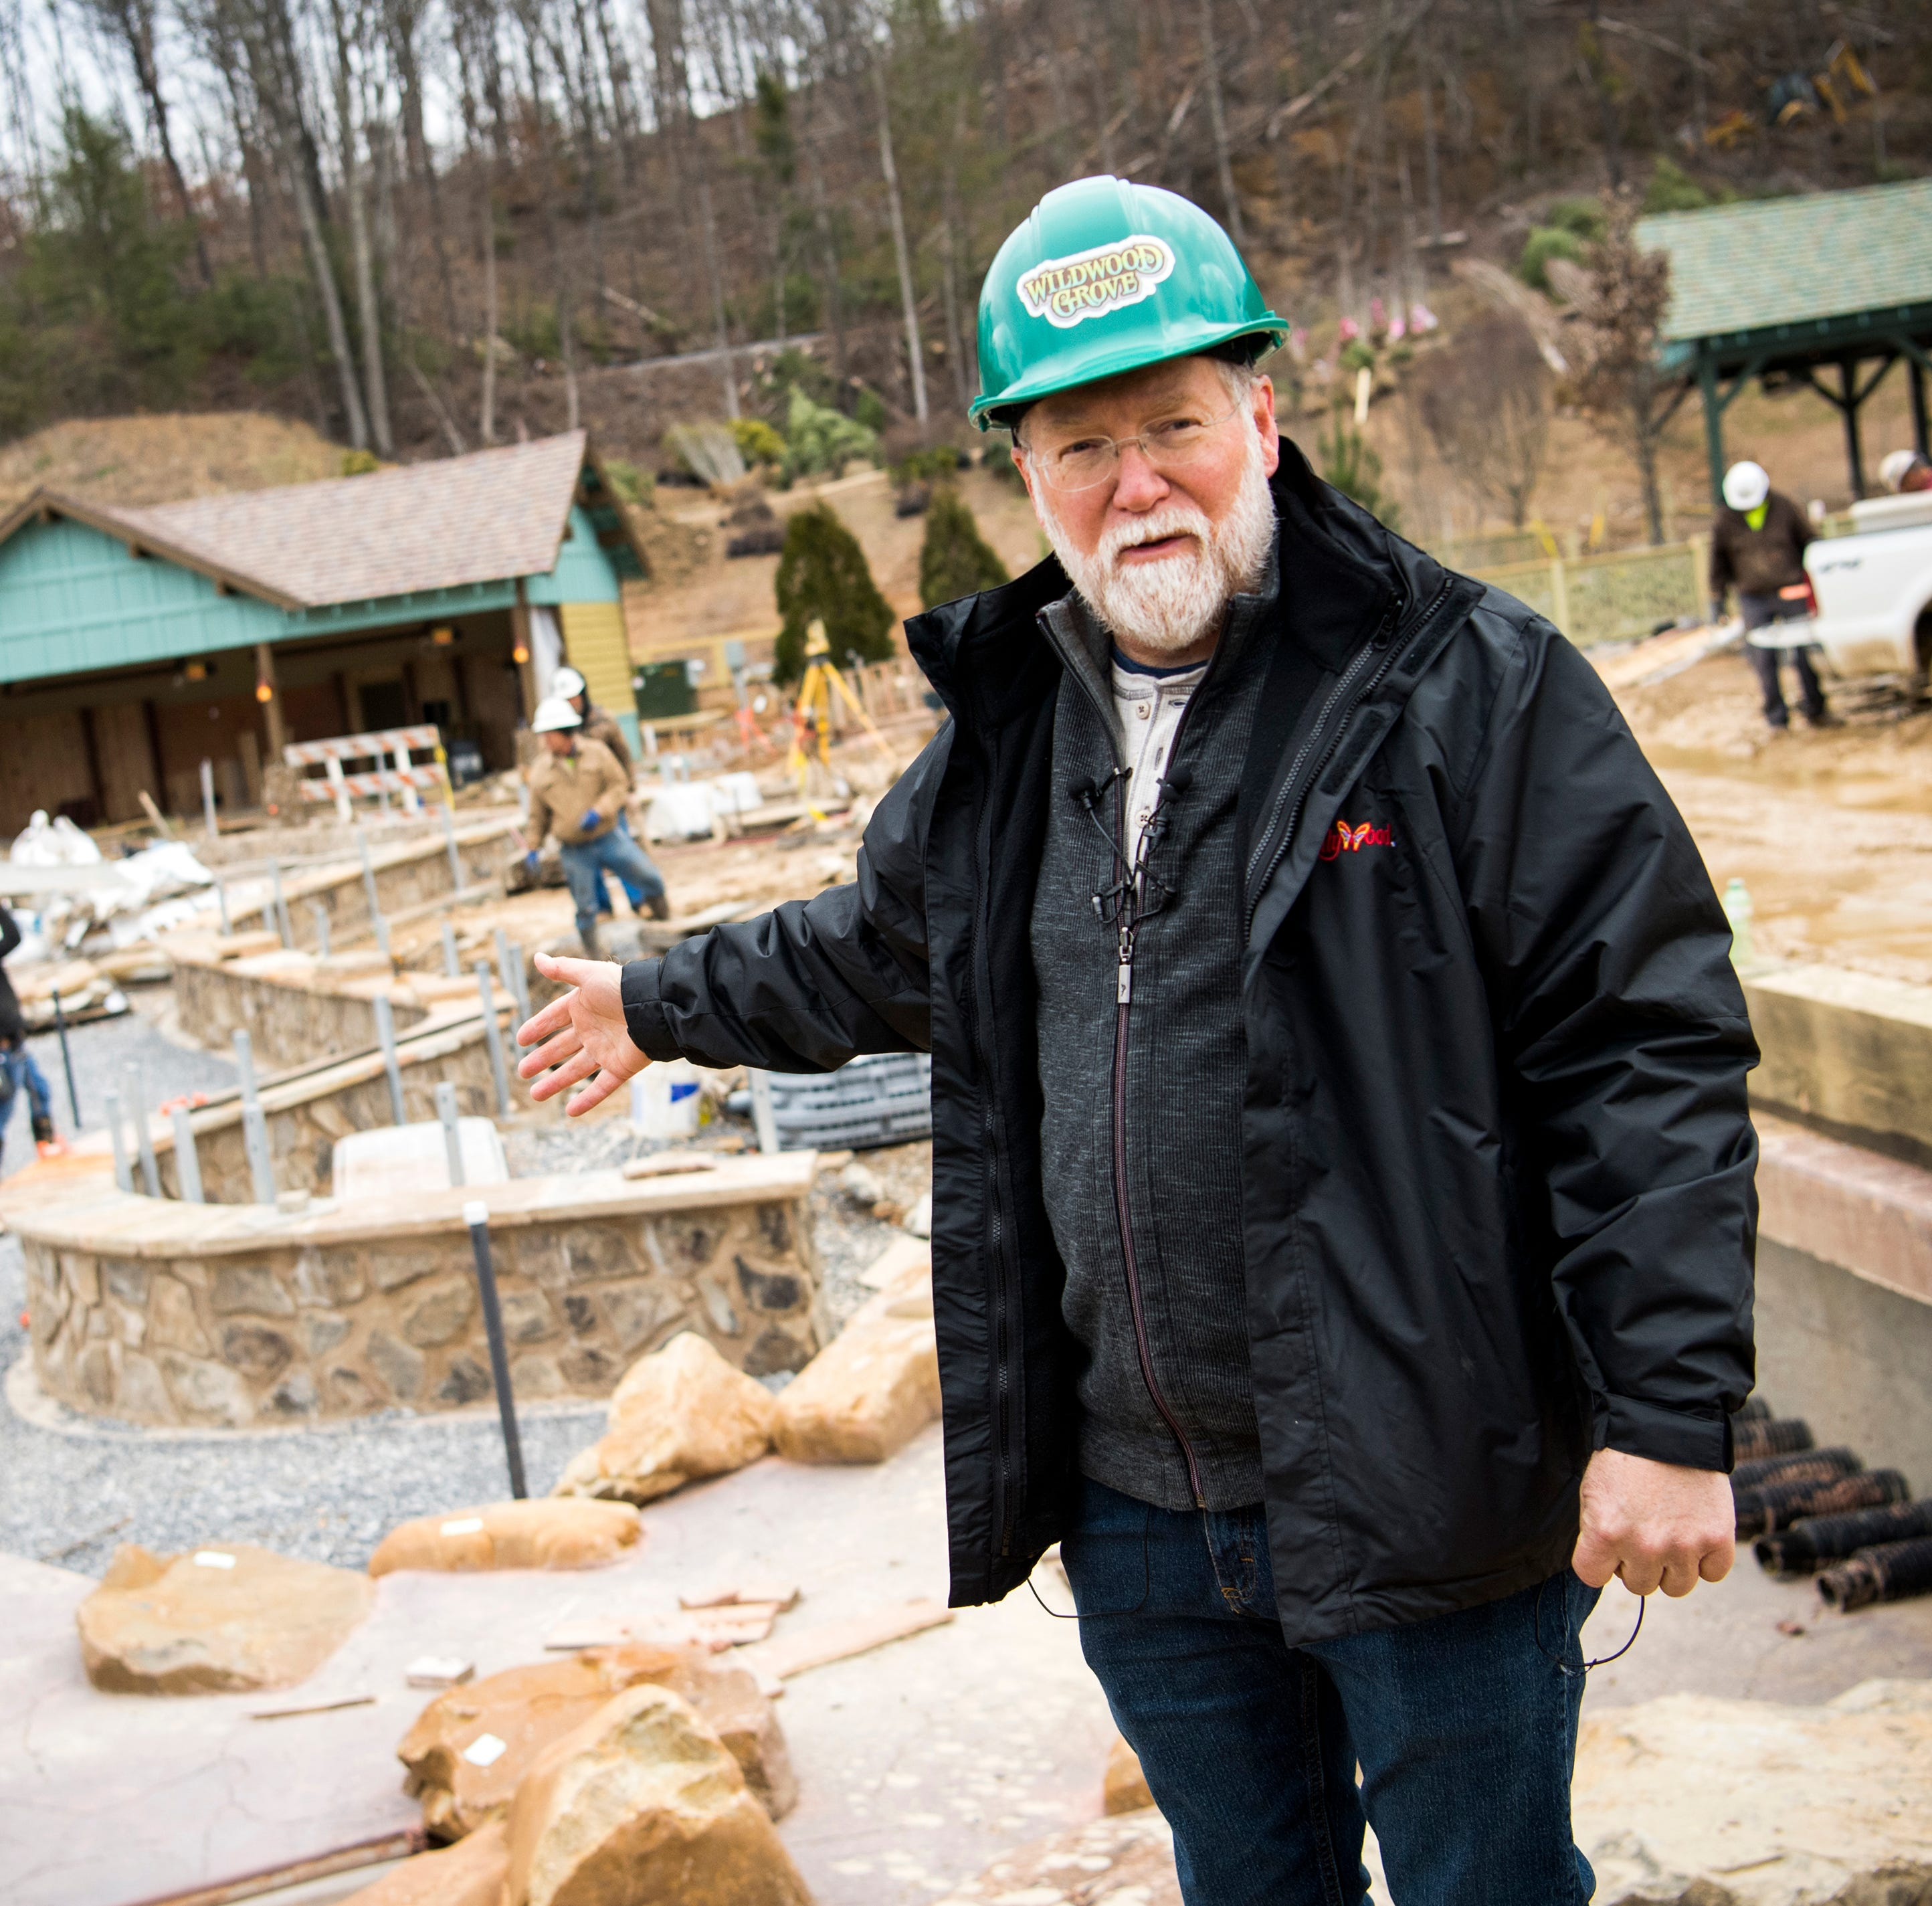 Take a tour of Dollywood's new Wildwood Grove, set to open May 10